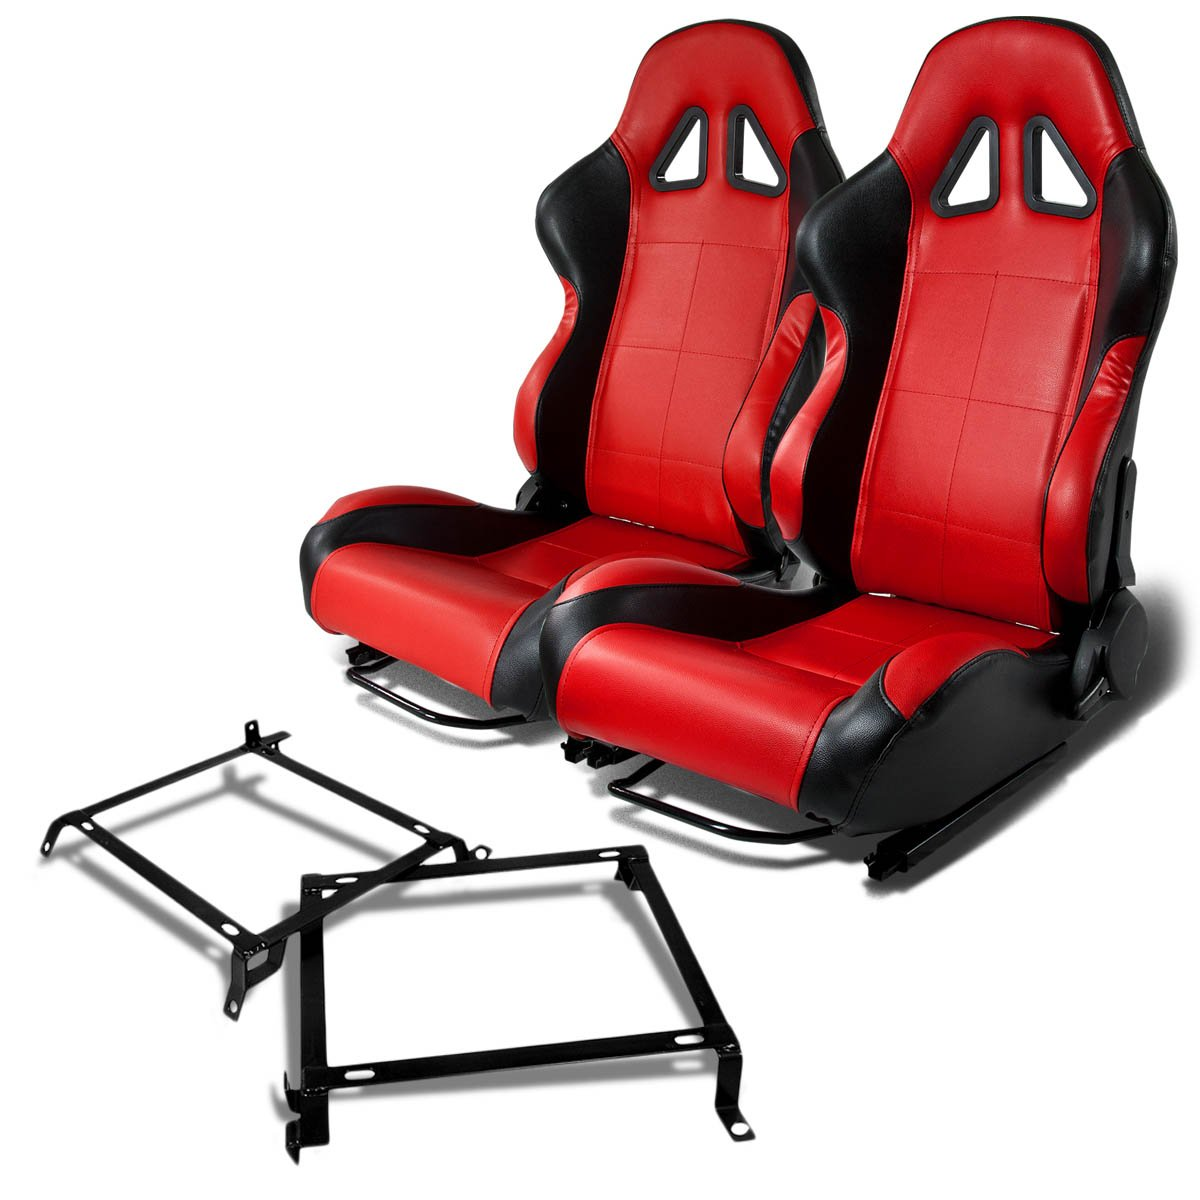 Pair of RST5BKRD Racing Seats+Mounting Bracket for Honda Civic//Acura Integra Sedan /& Coupe